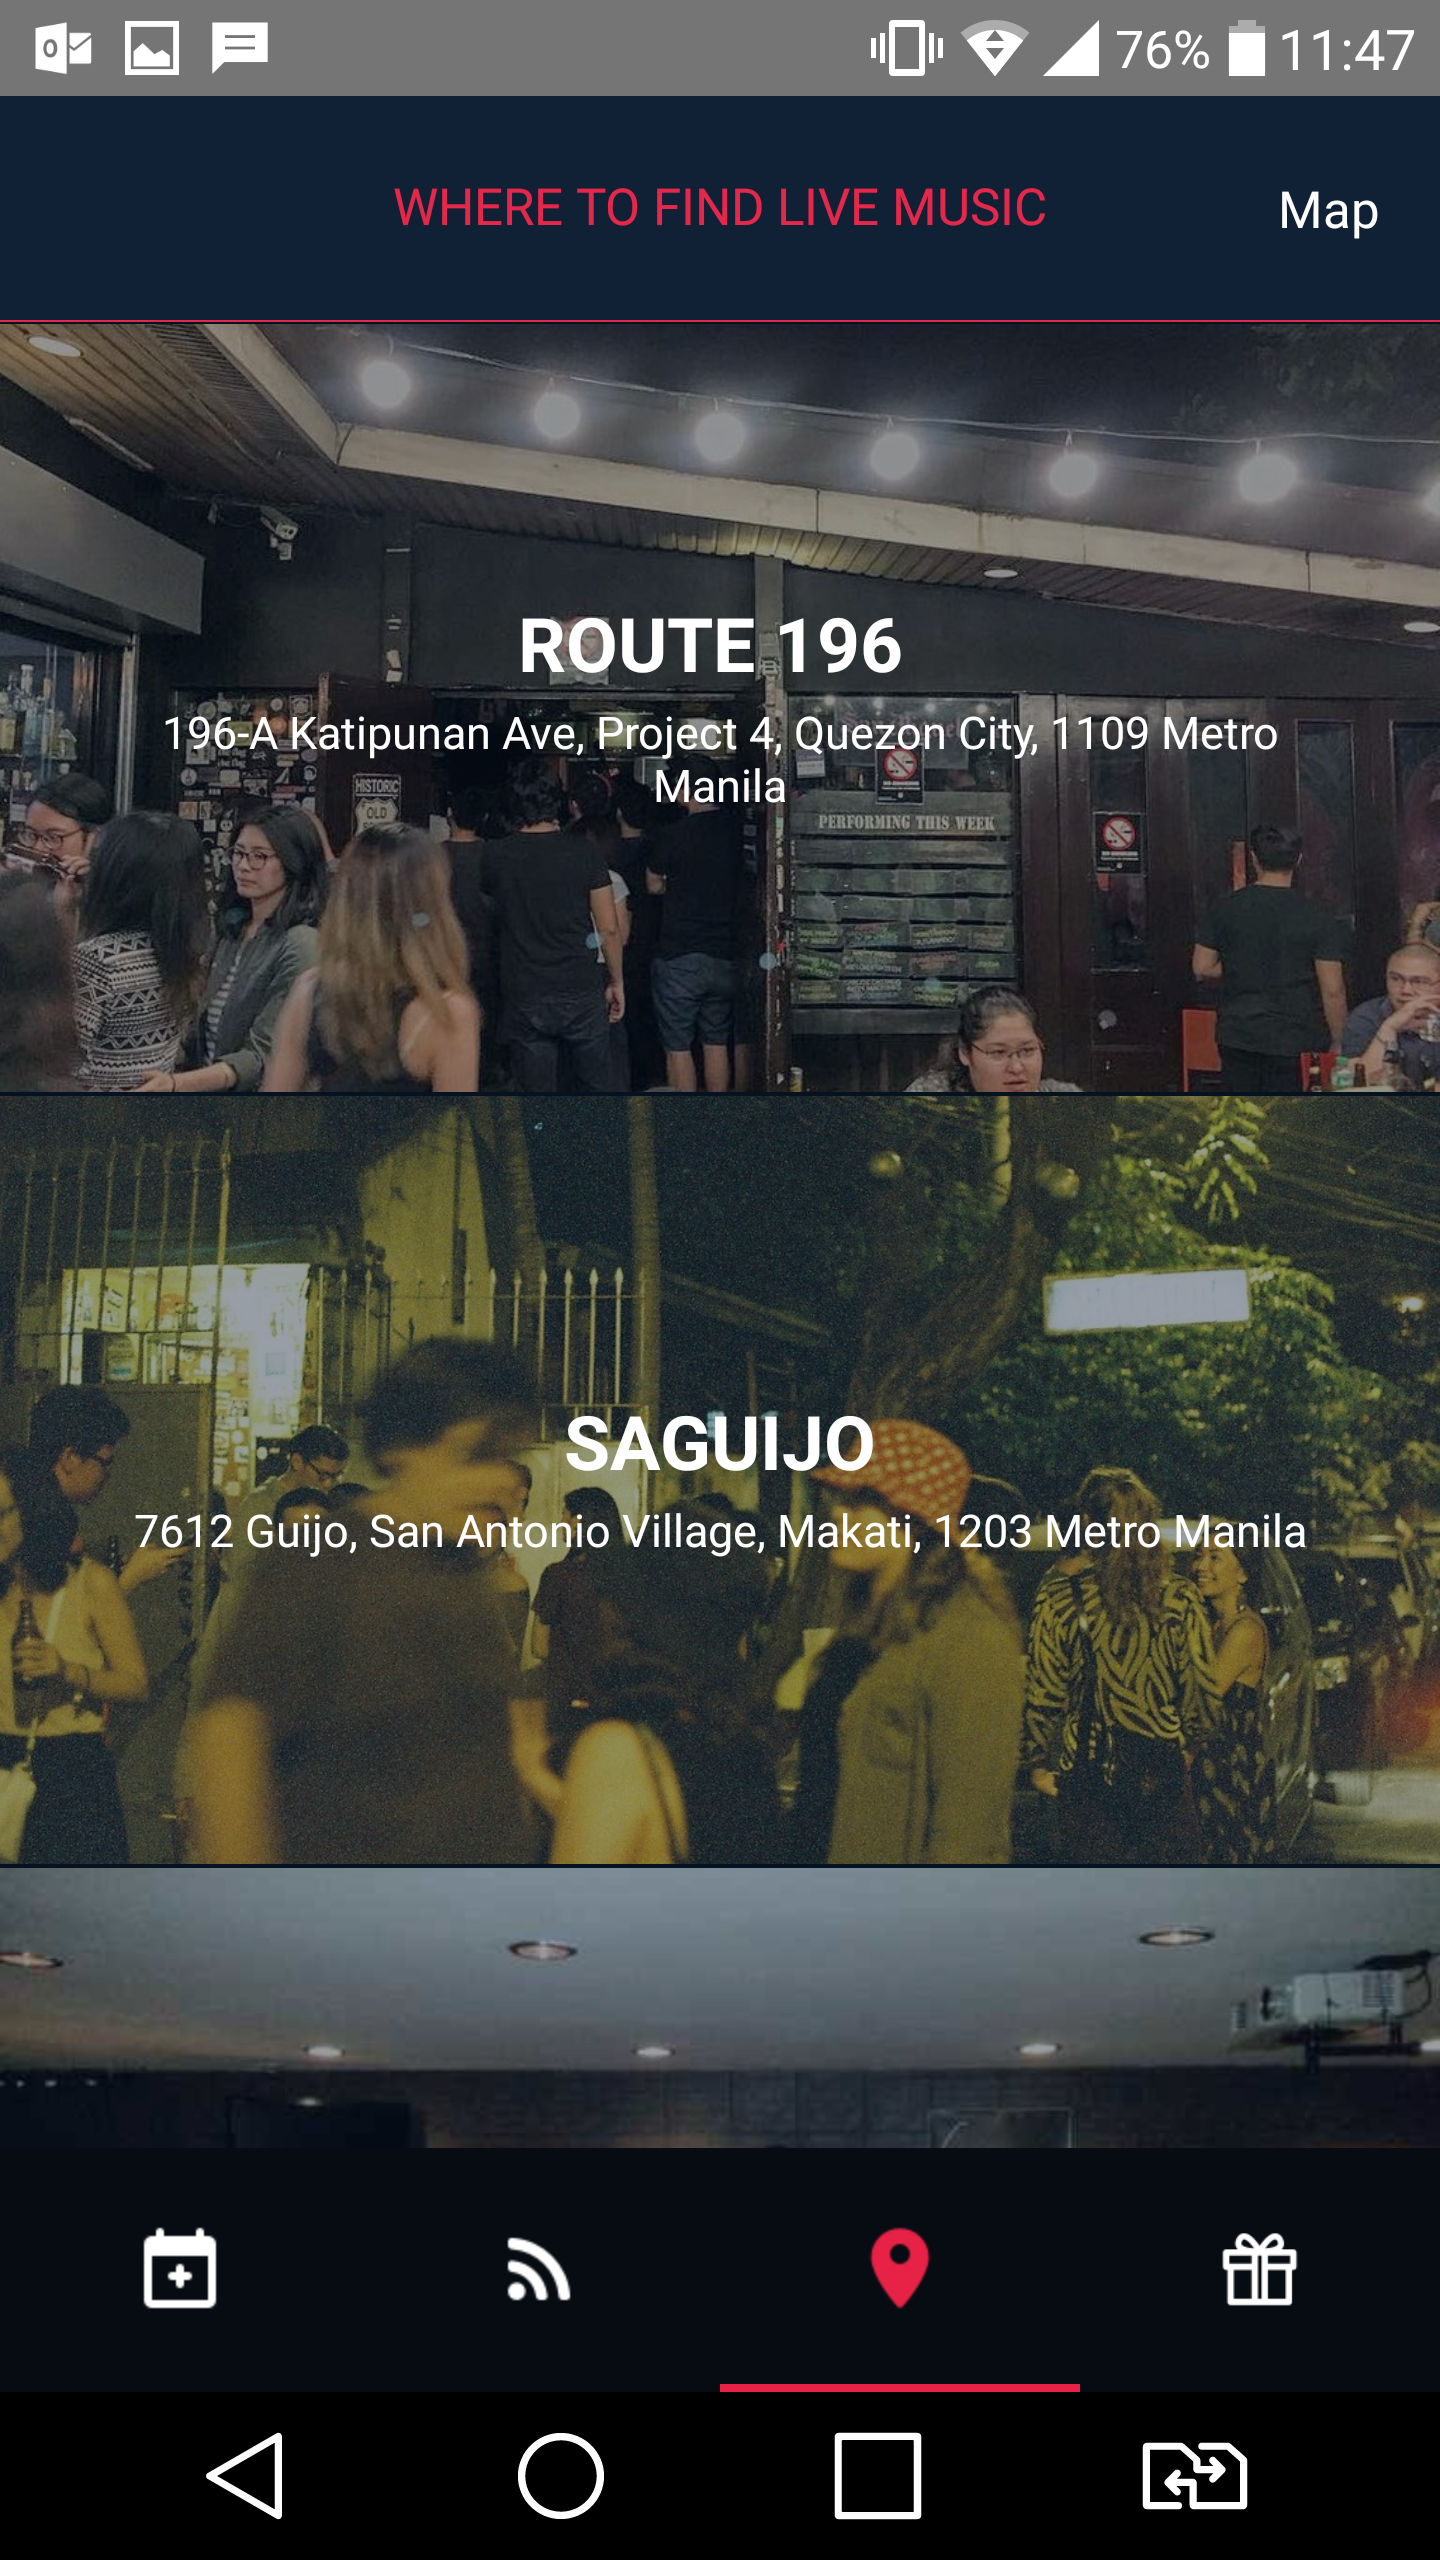 Indie Manila launches new app for finding gigs in the city